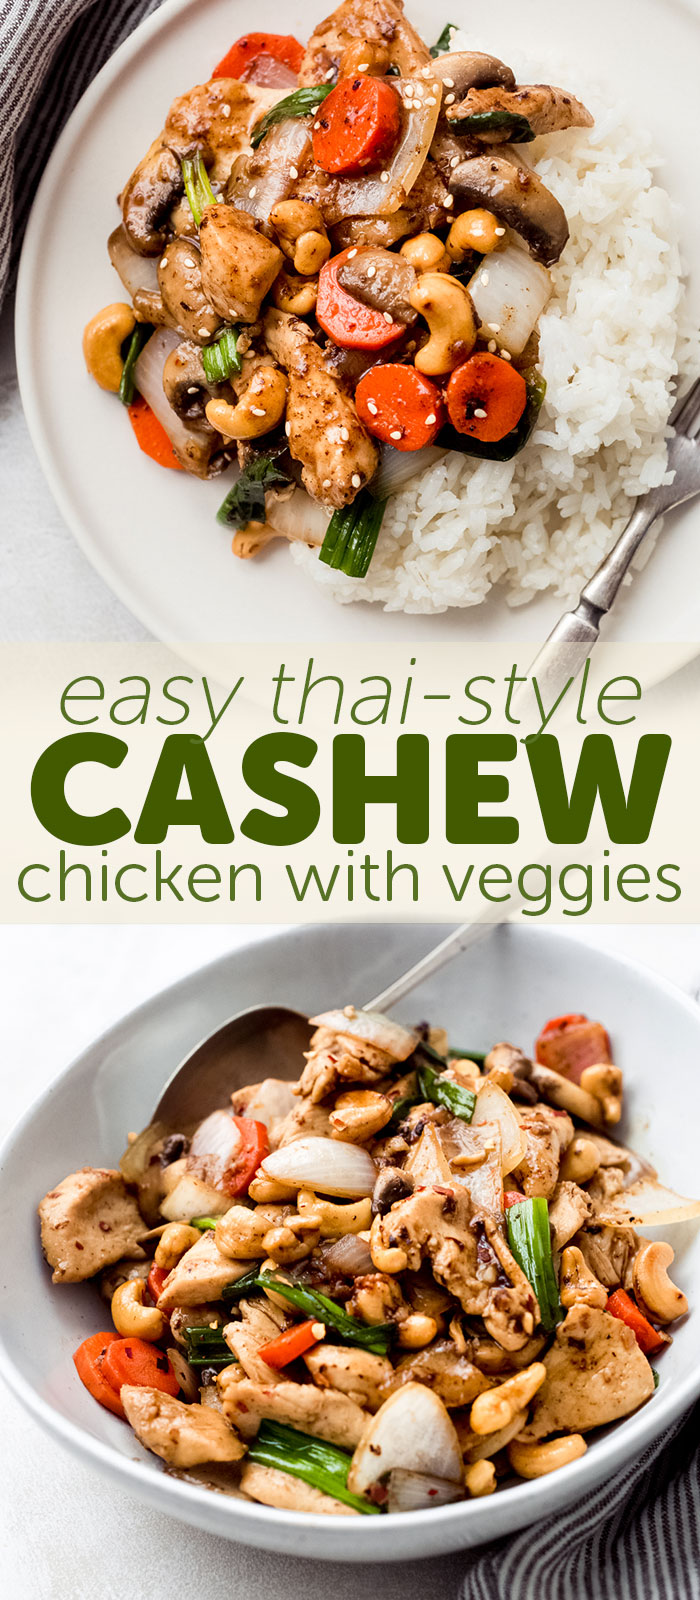 Easy Thai Cashew Chicken that takes just like your favorite Thai take out! Made with tender chicken, crisp veggies, and an addicting brown sauce! #stirfry #chickenstirfry #cashewchicken #thaicashewchicken #easychickenrecipes | Littlespicejar.com